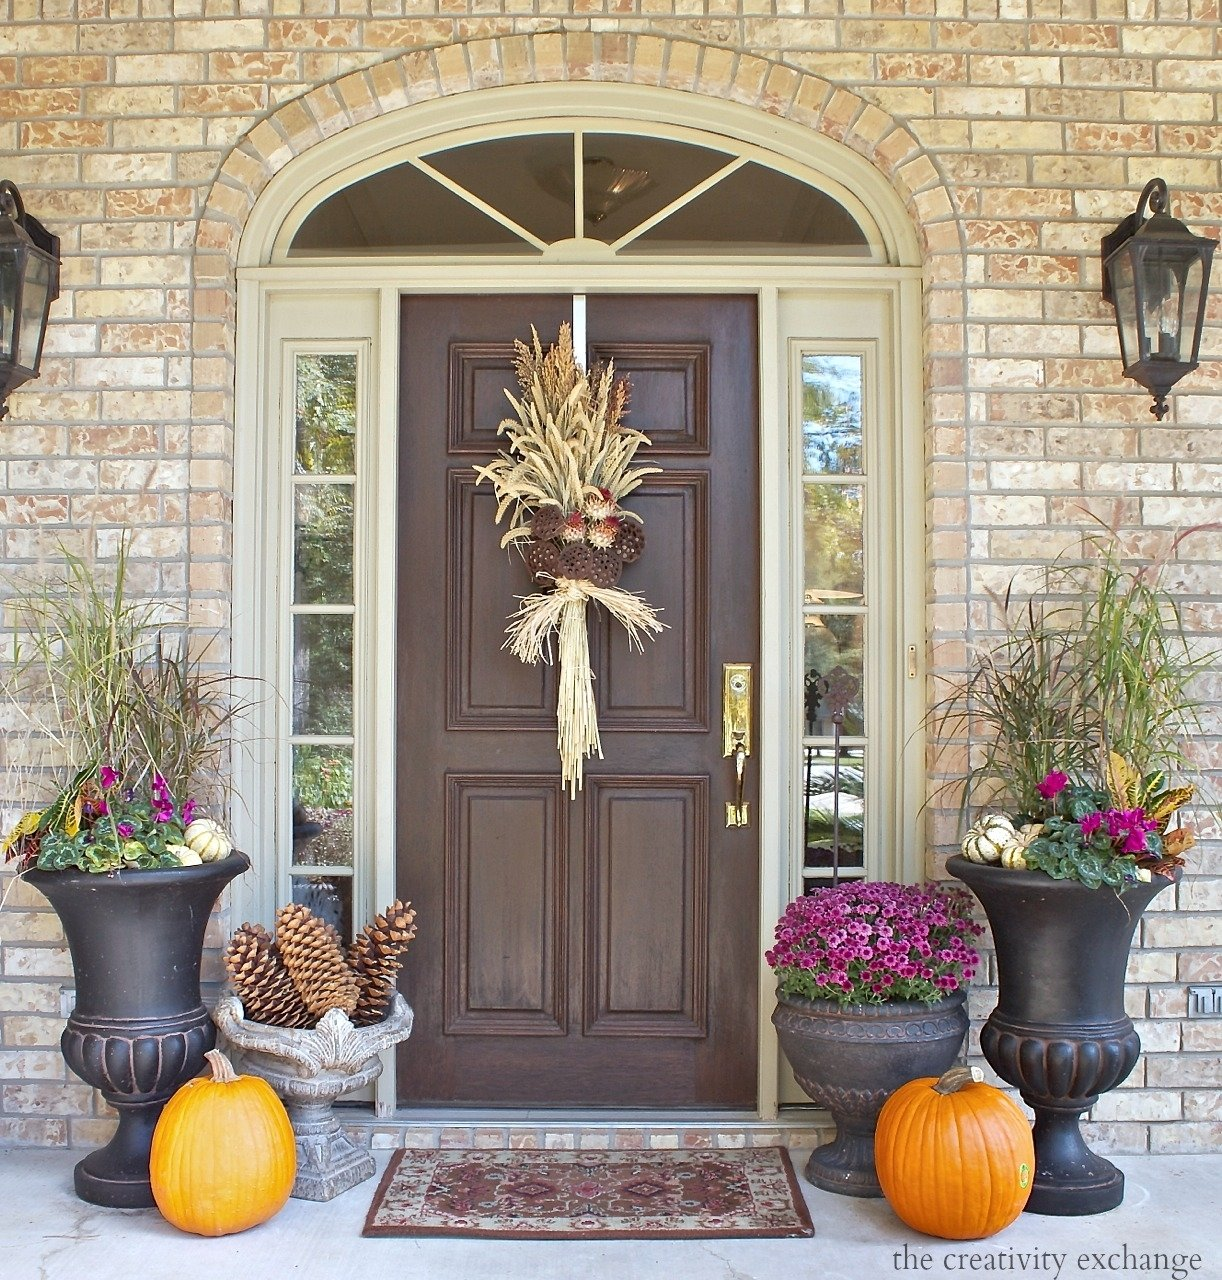 10 Cute Fall Front Porch Decorating Ideas fall front porch decorating ideas the creativity exchange front fall 2 2020